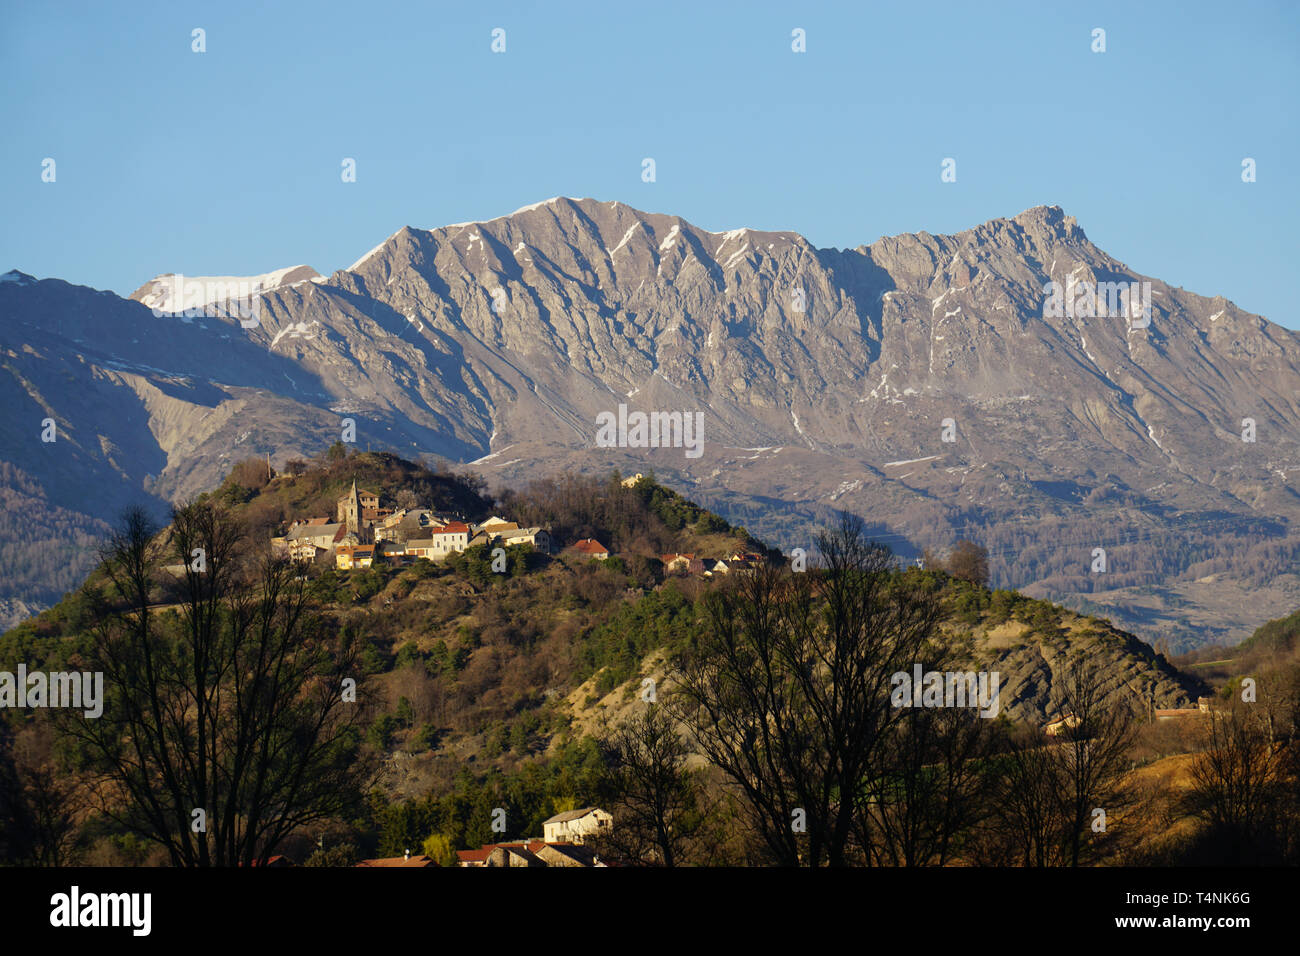 View of a small typical village on top of a hill in Southern France at sunset by the mountains - Stock Image